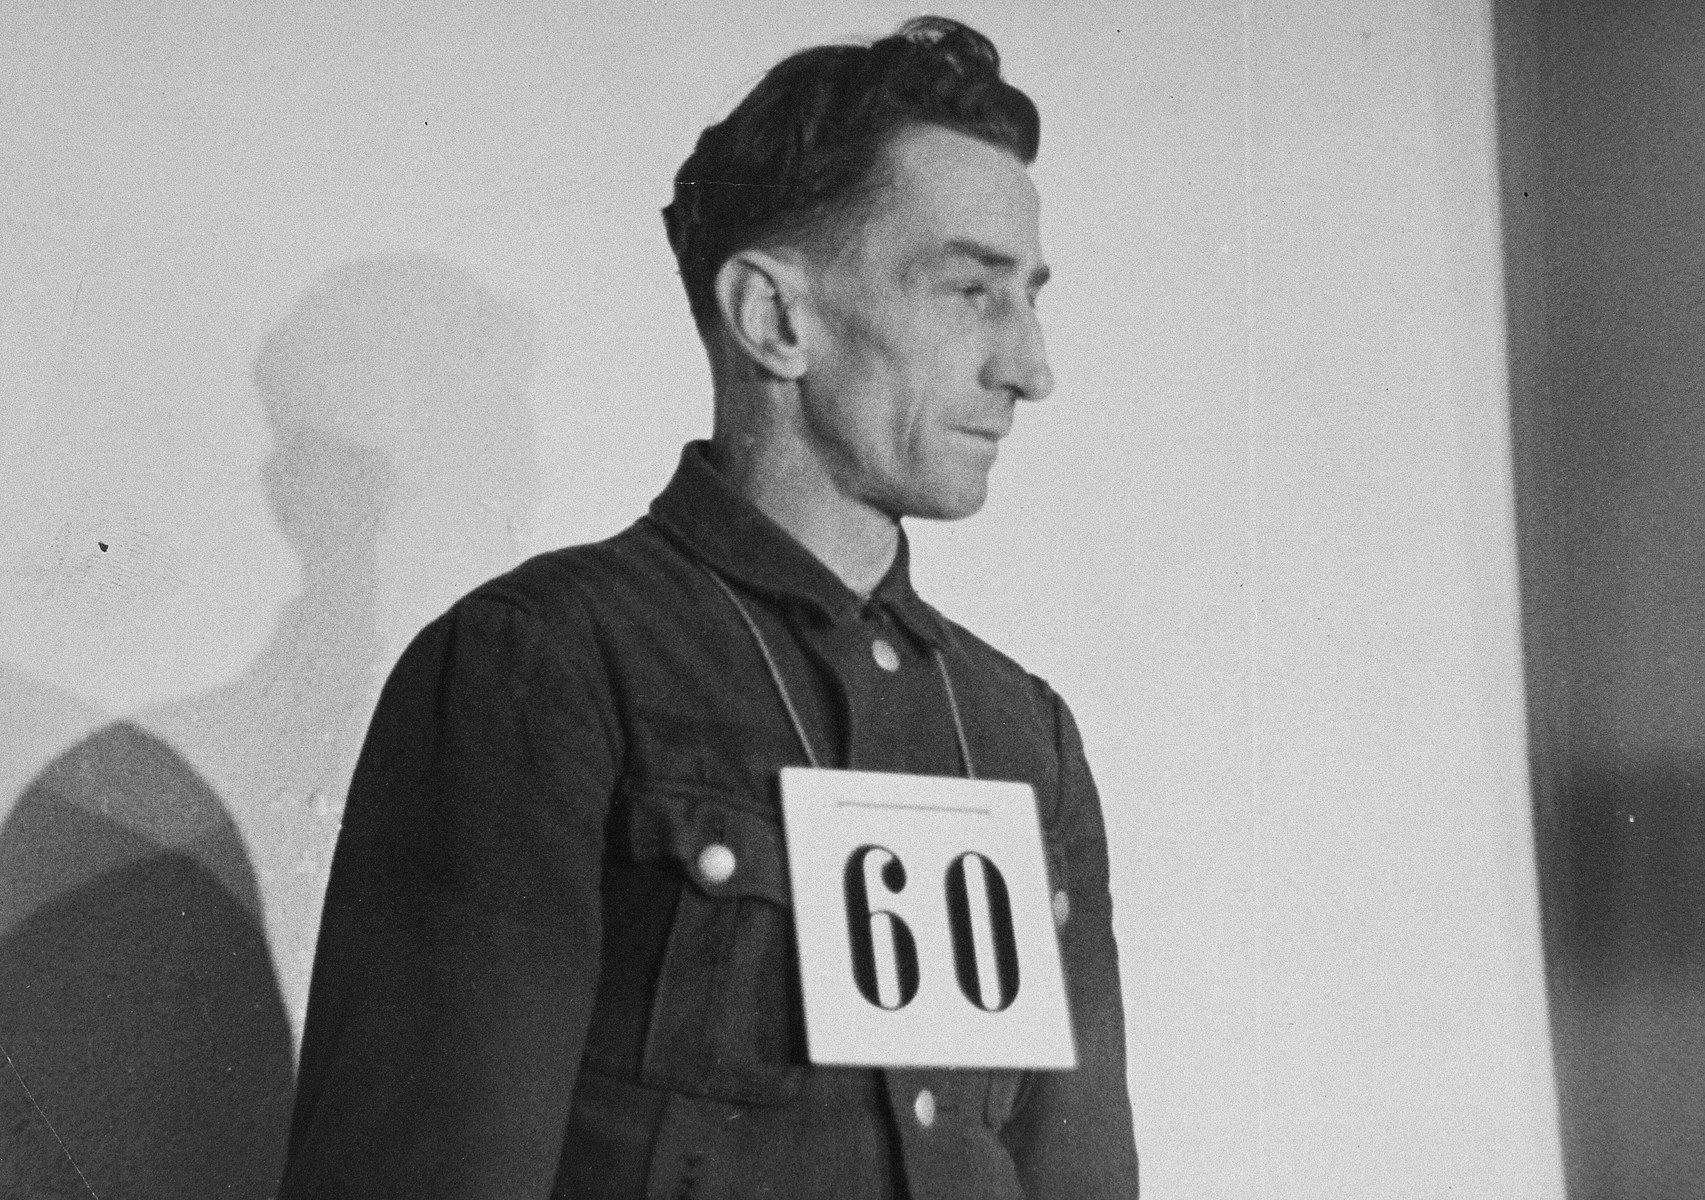 Portrait of former SS-Hauptscharfuehrer Hans Spatzenegger, a defendant at the trial of 61 former camp personnel and prisoners from Mauthausen.    Spatzenegger was convicted and sentenced to death on May 13, 1946.